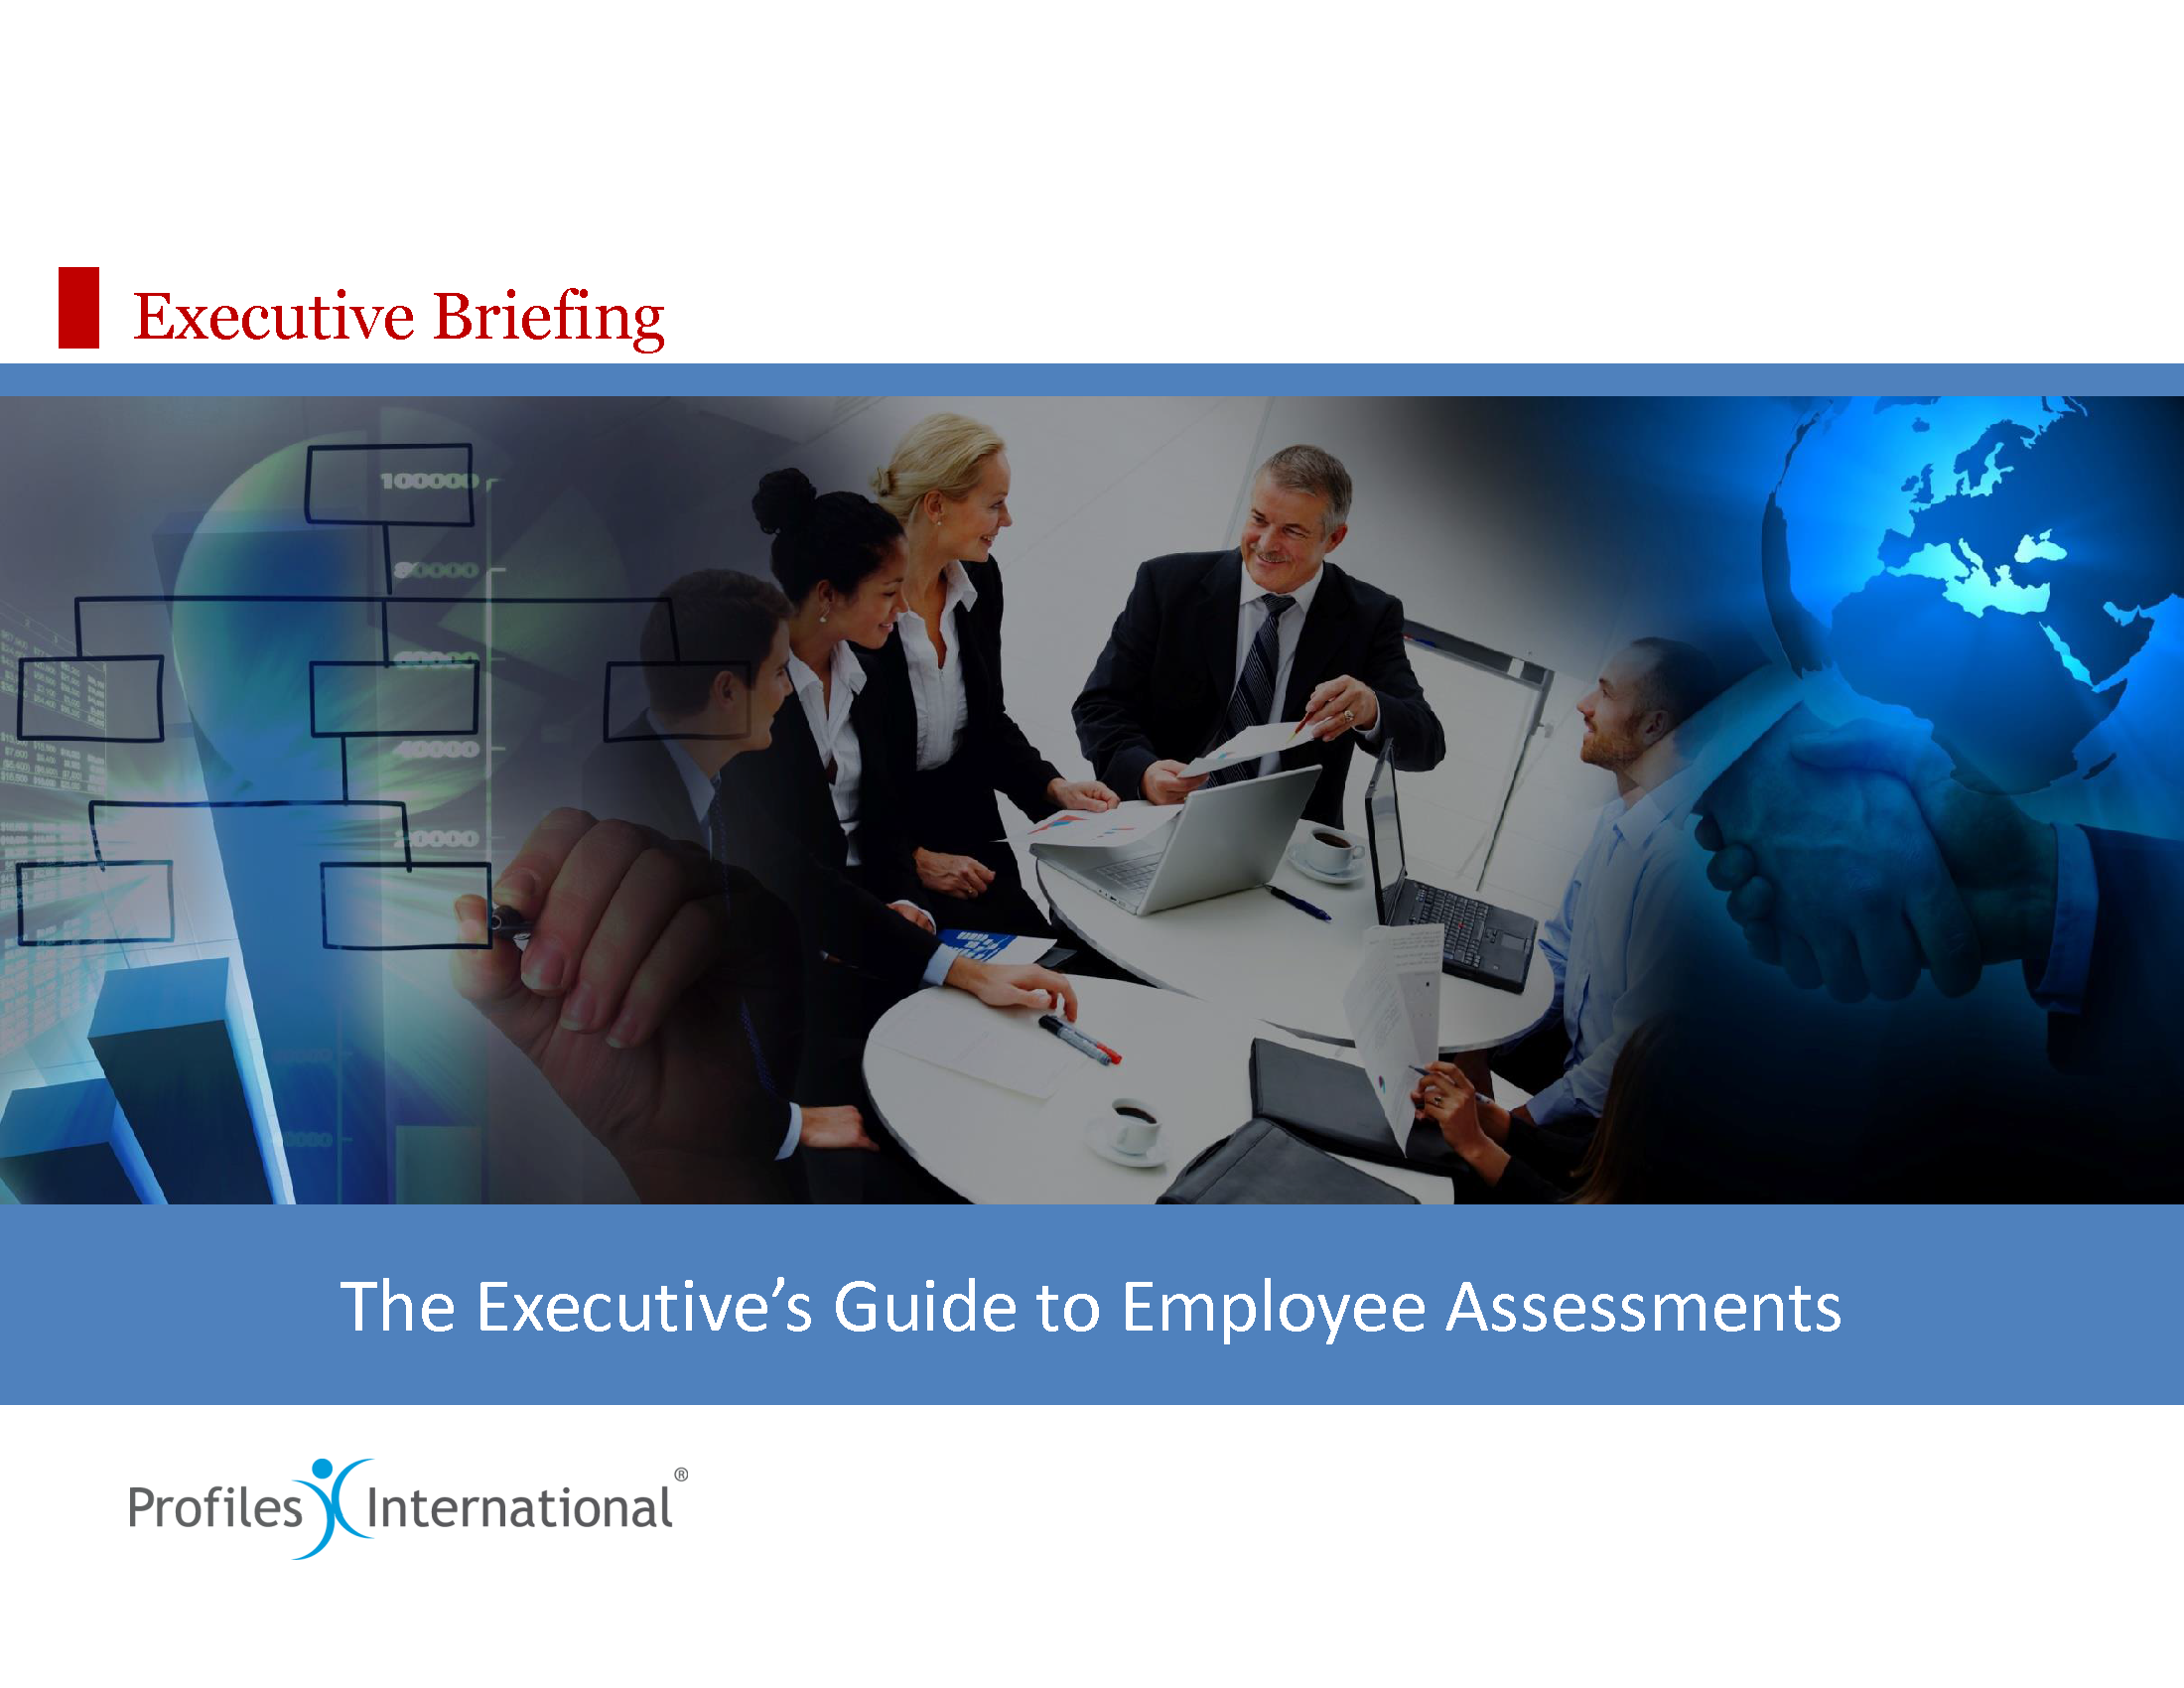 09-Executive Guide to Employee Assessments